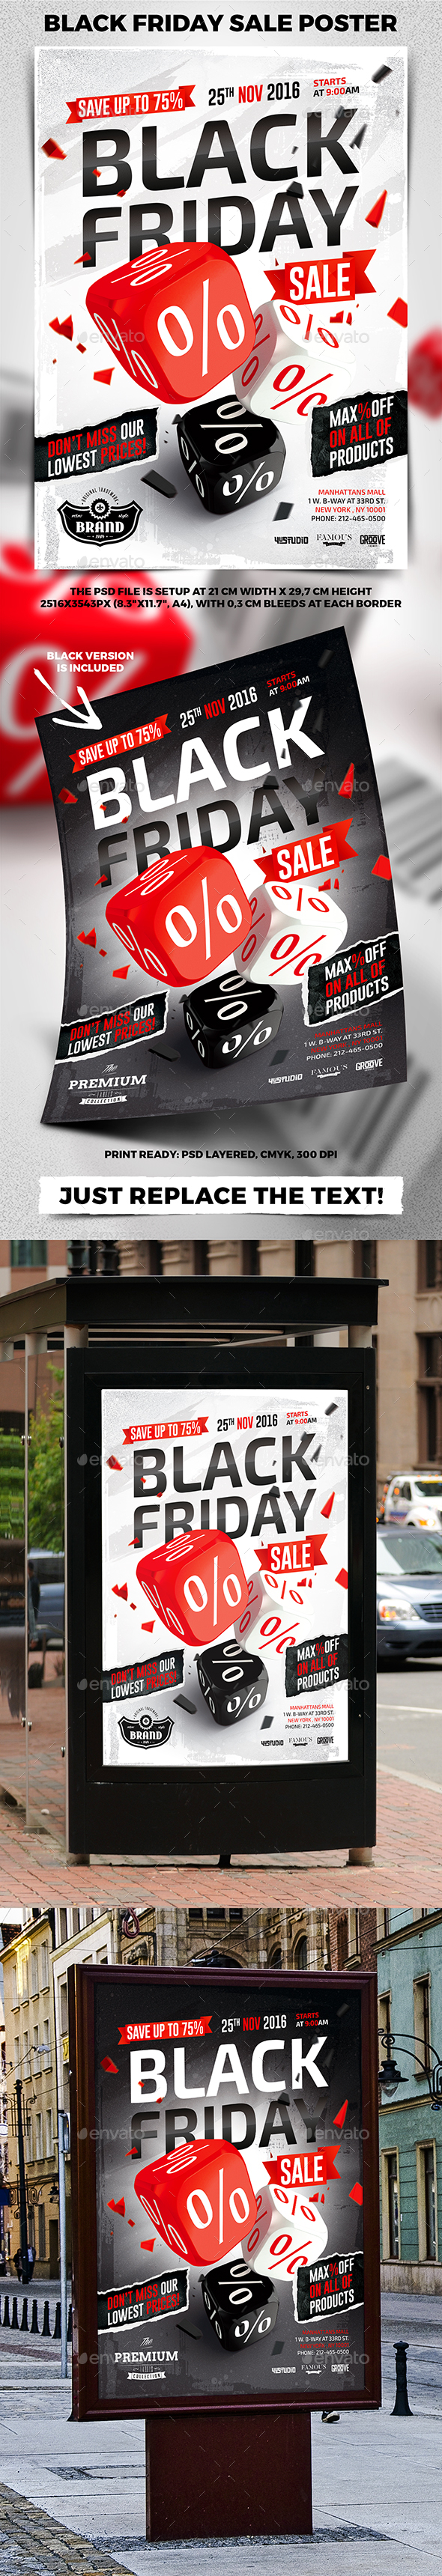 Black Friday Sale Poster - Commerce Flyers